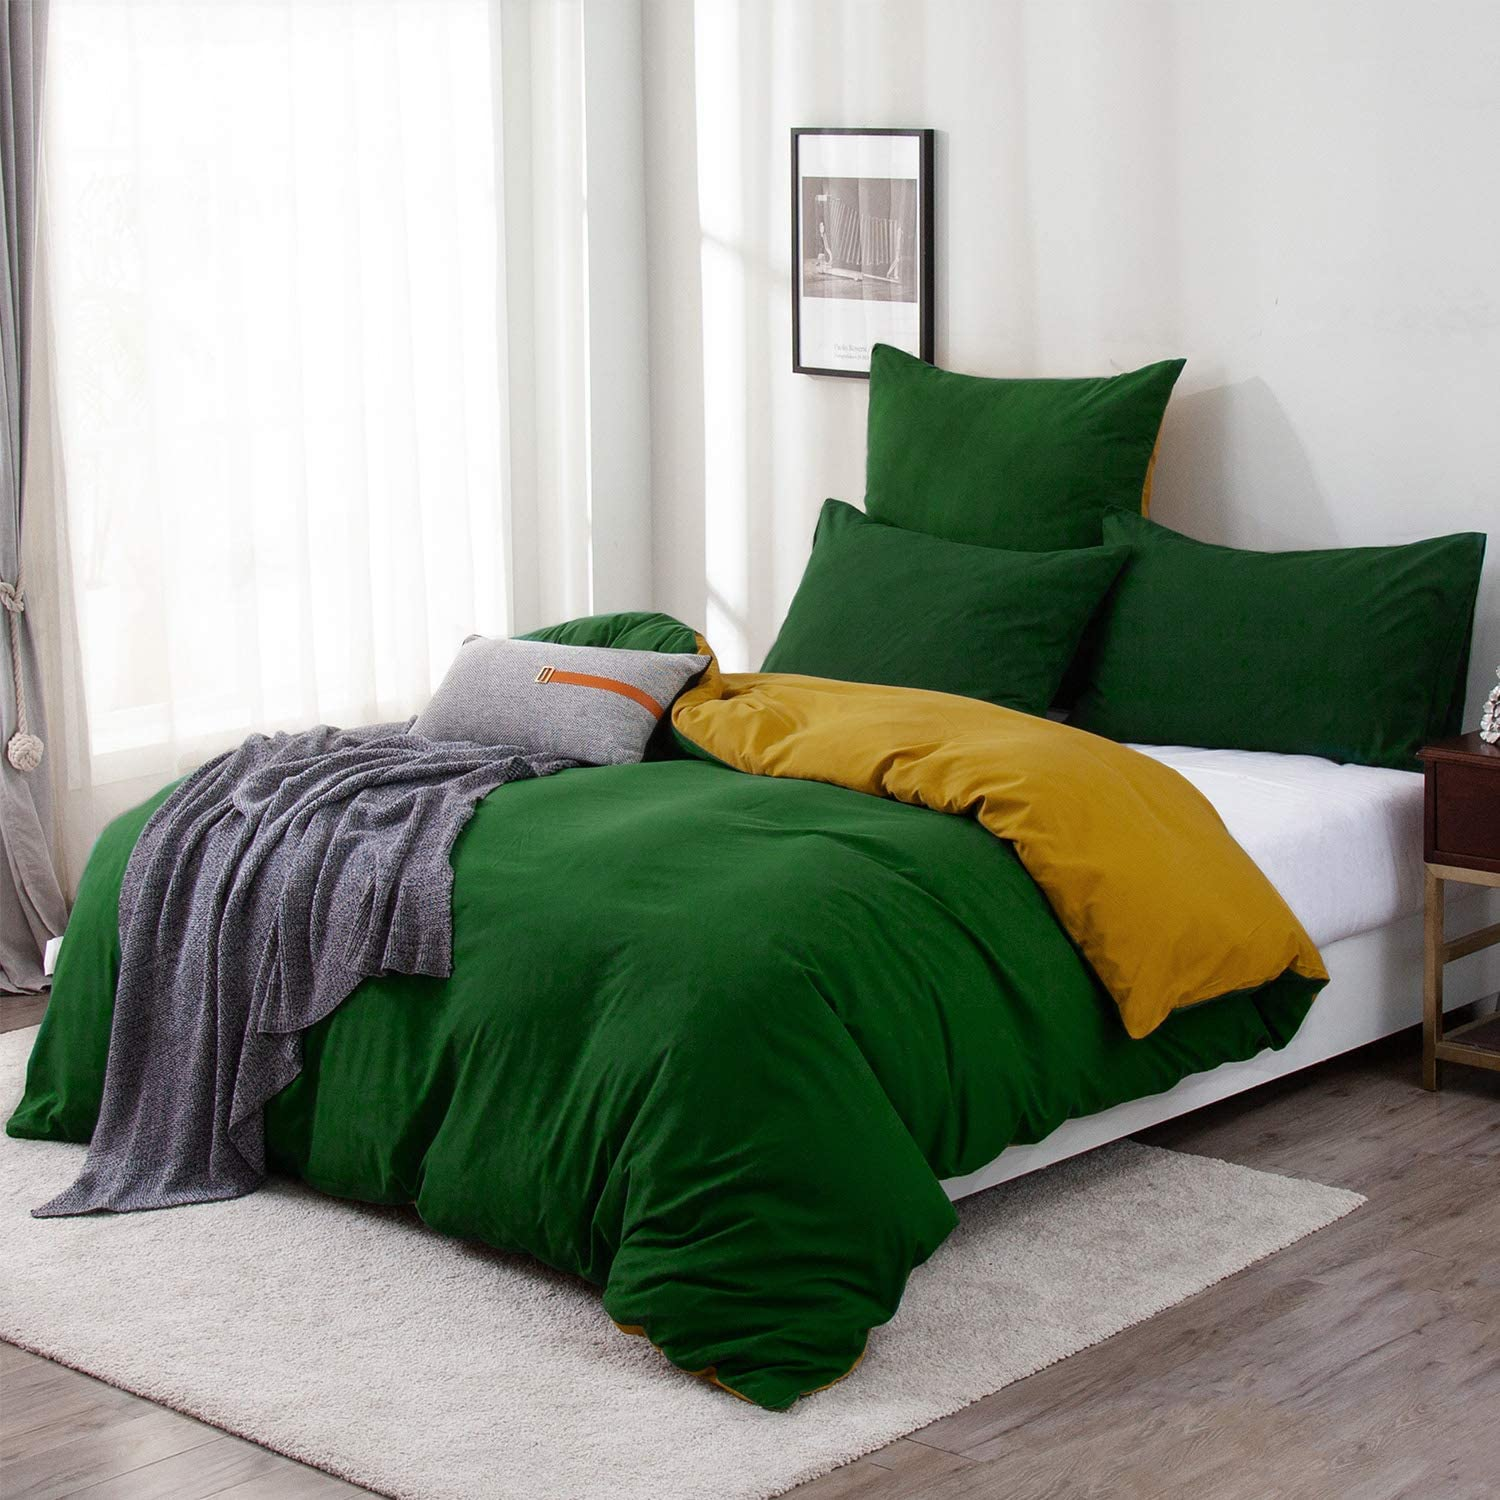 Ccoutuechen Dark Green Duvet Cover Set Twin Brushed Microfiber Comforter Cover Reversible Turmeric Solid Color Quilt Cover Soft Breathable Modern All Season Bedding Set With Zipper Home Kitchen